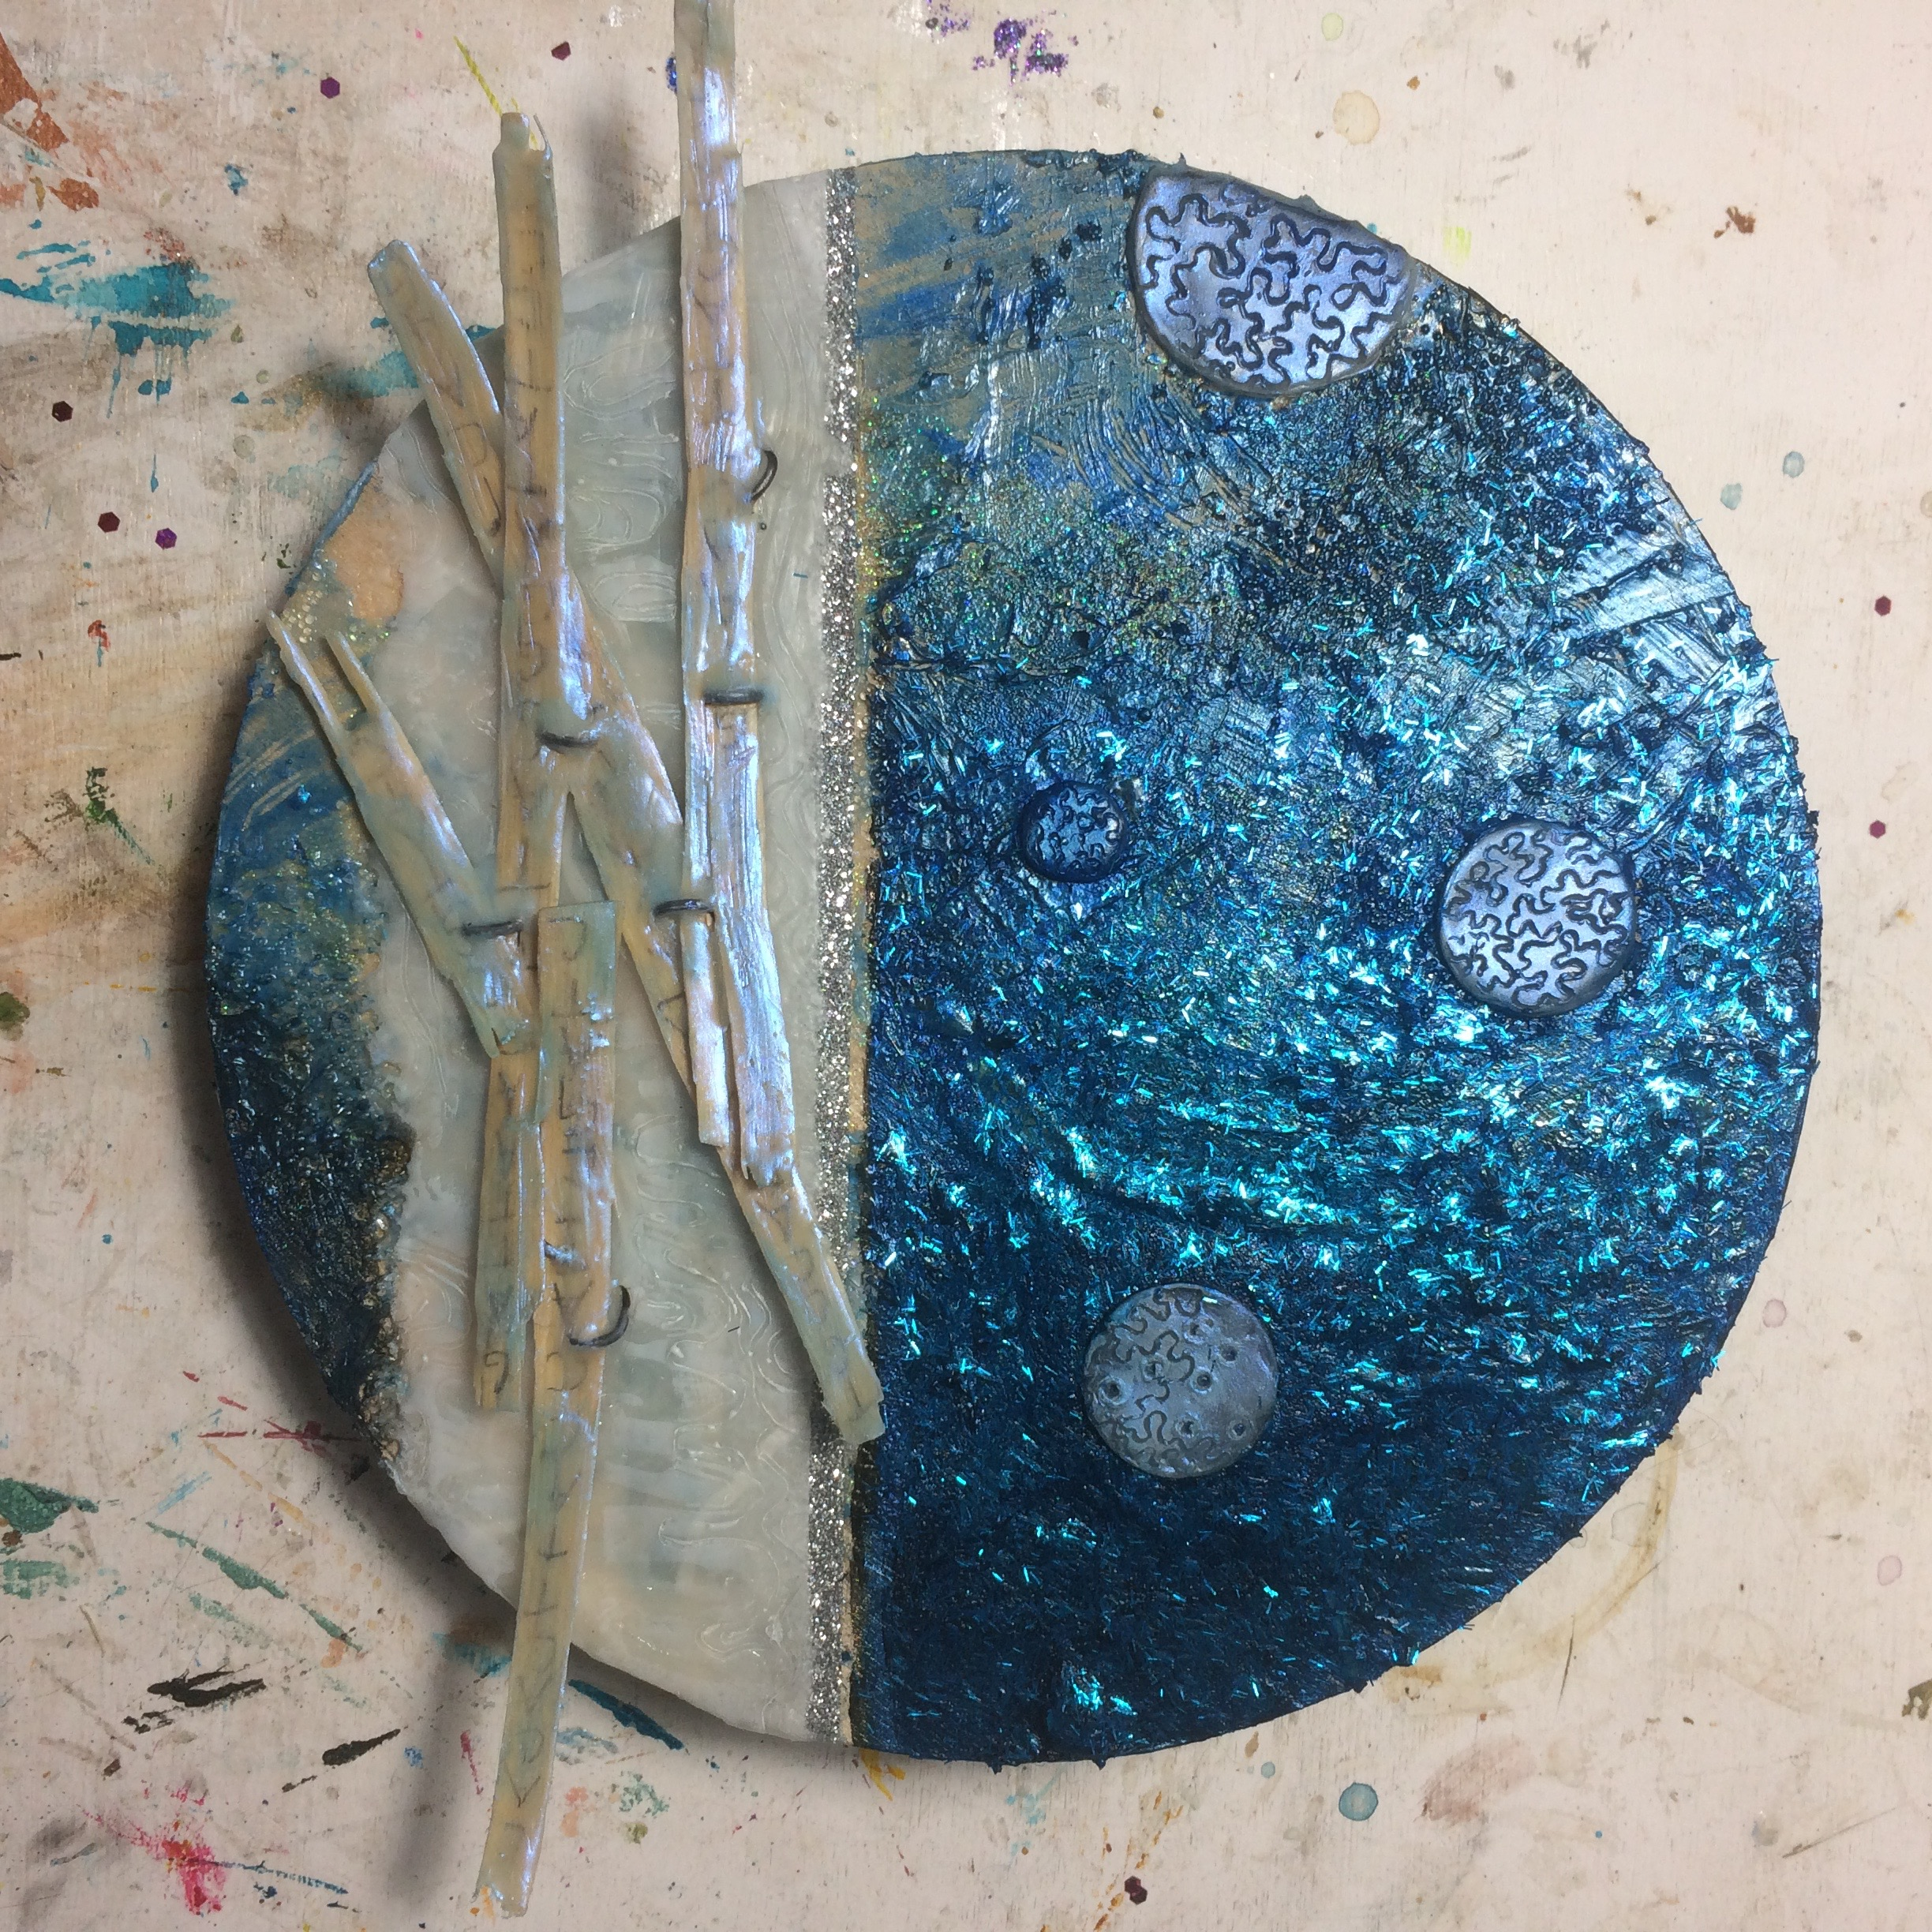 (A) Covered surface in blue glitter, interference blu over wax planets